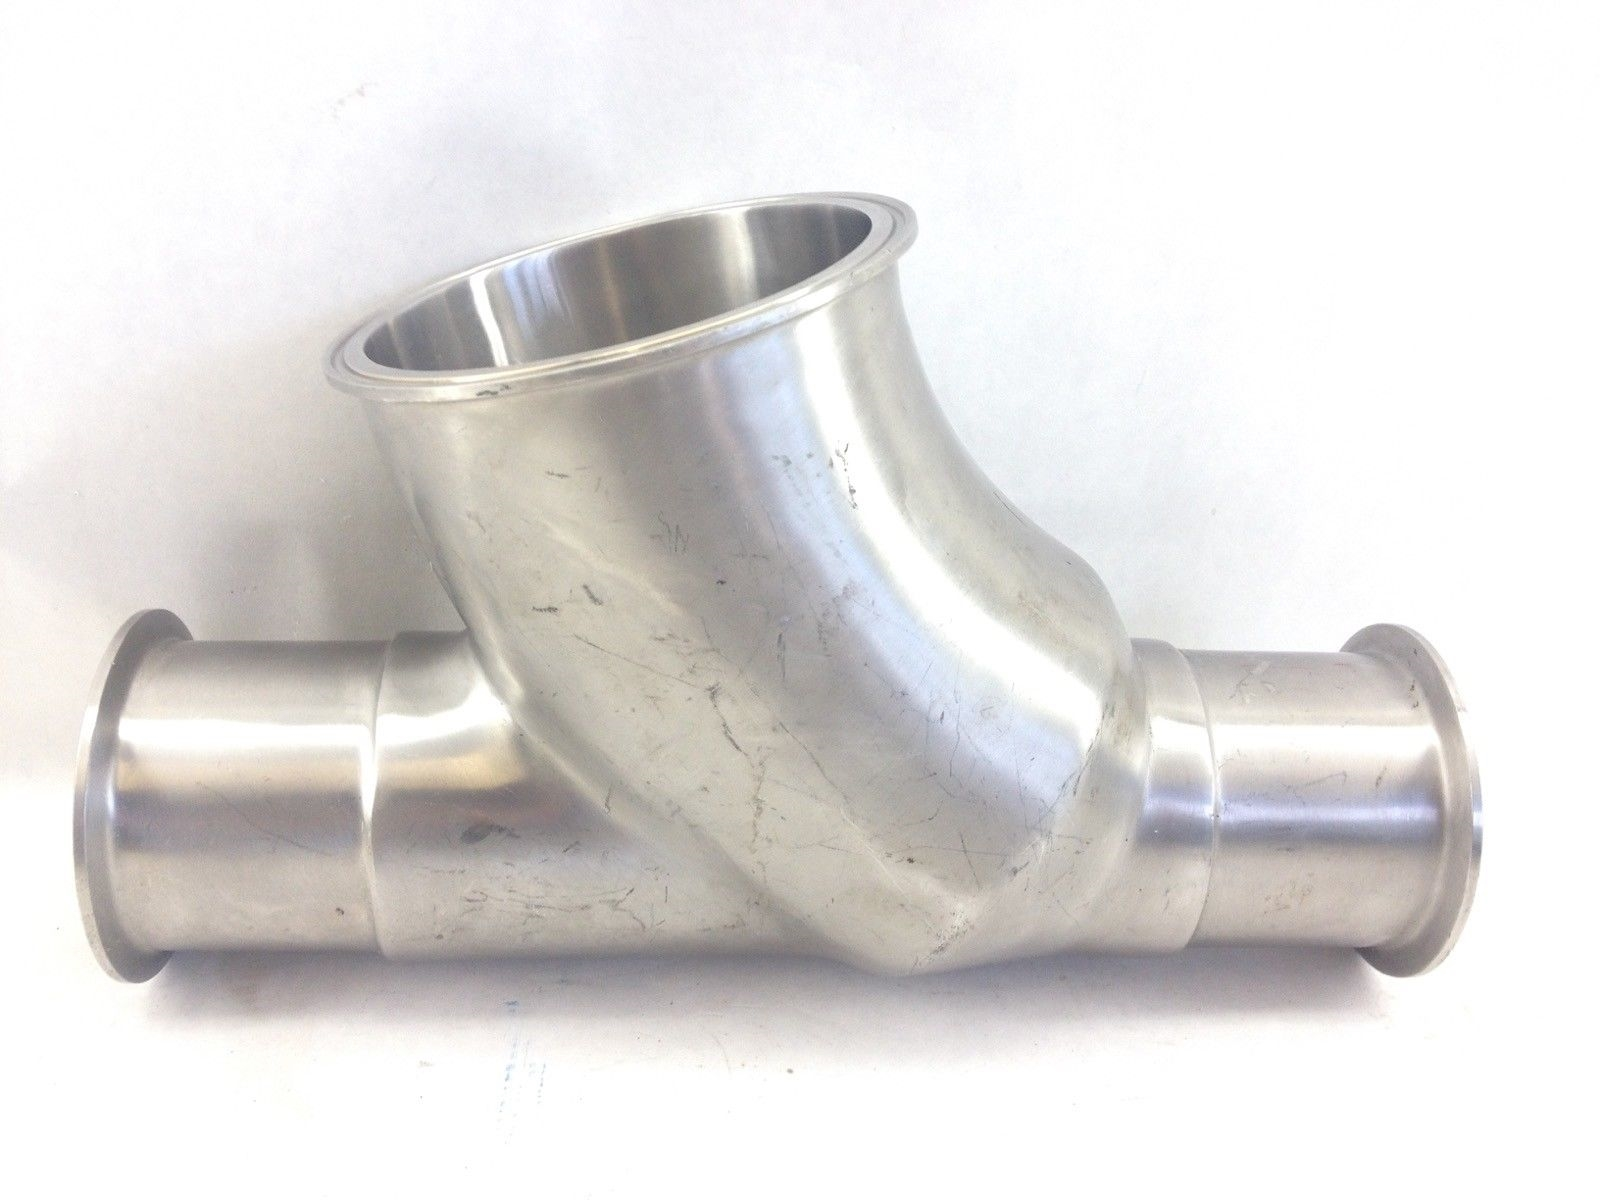 SS SANITARY FITTING WELD LATERAL 45* BALL CK VALVE HOUSING 2.75-4